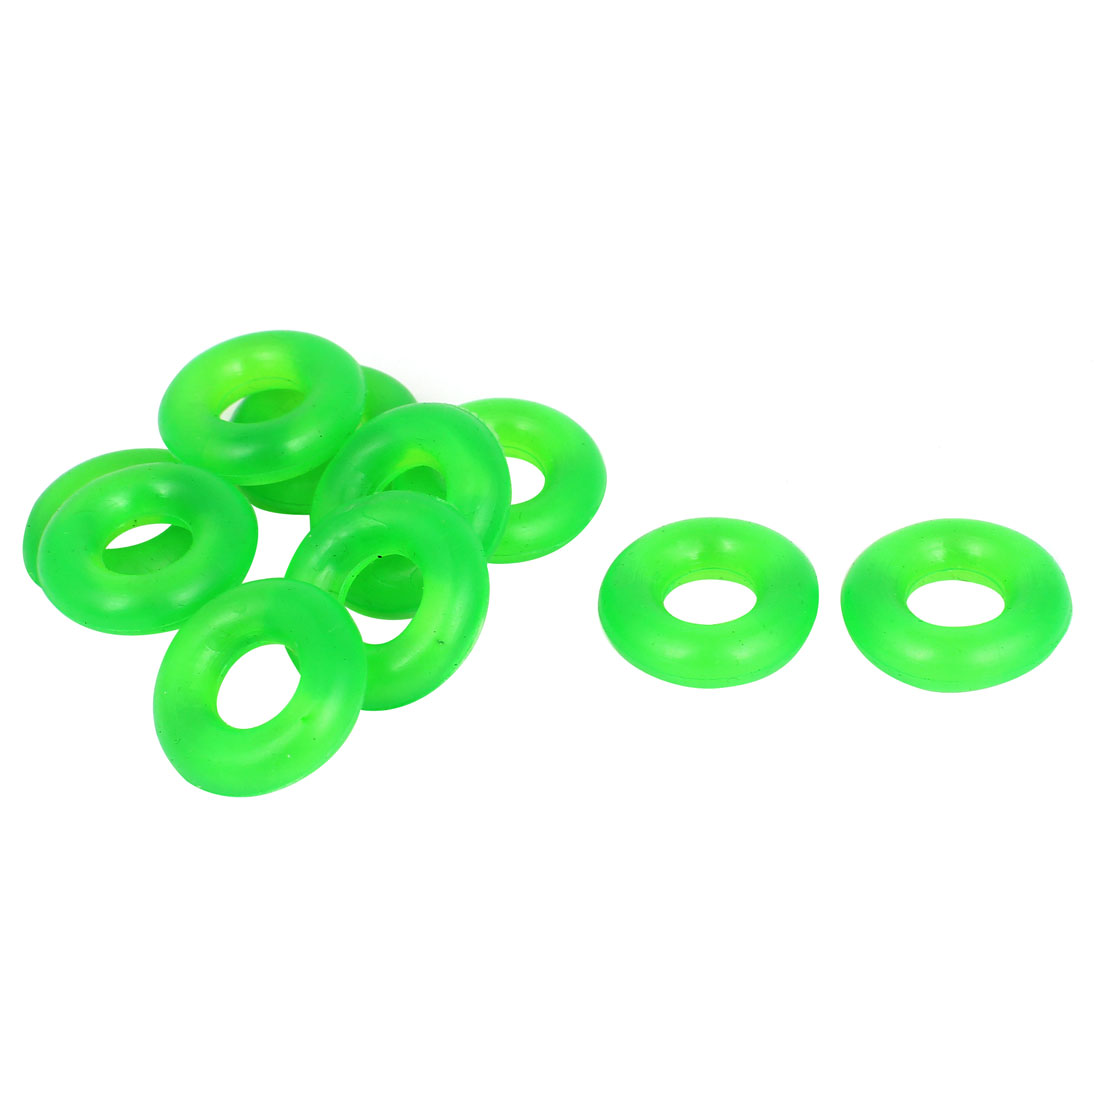 10 Pcs 25mm x 10mm x 7.5mm Rubber O Rings Green for Wacky Worm Fishing